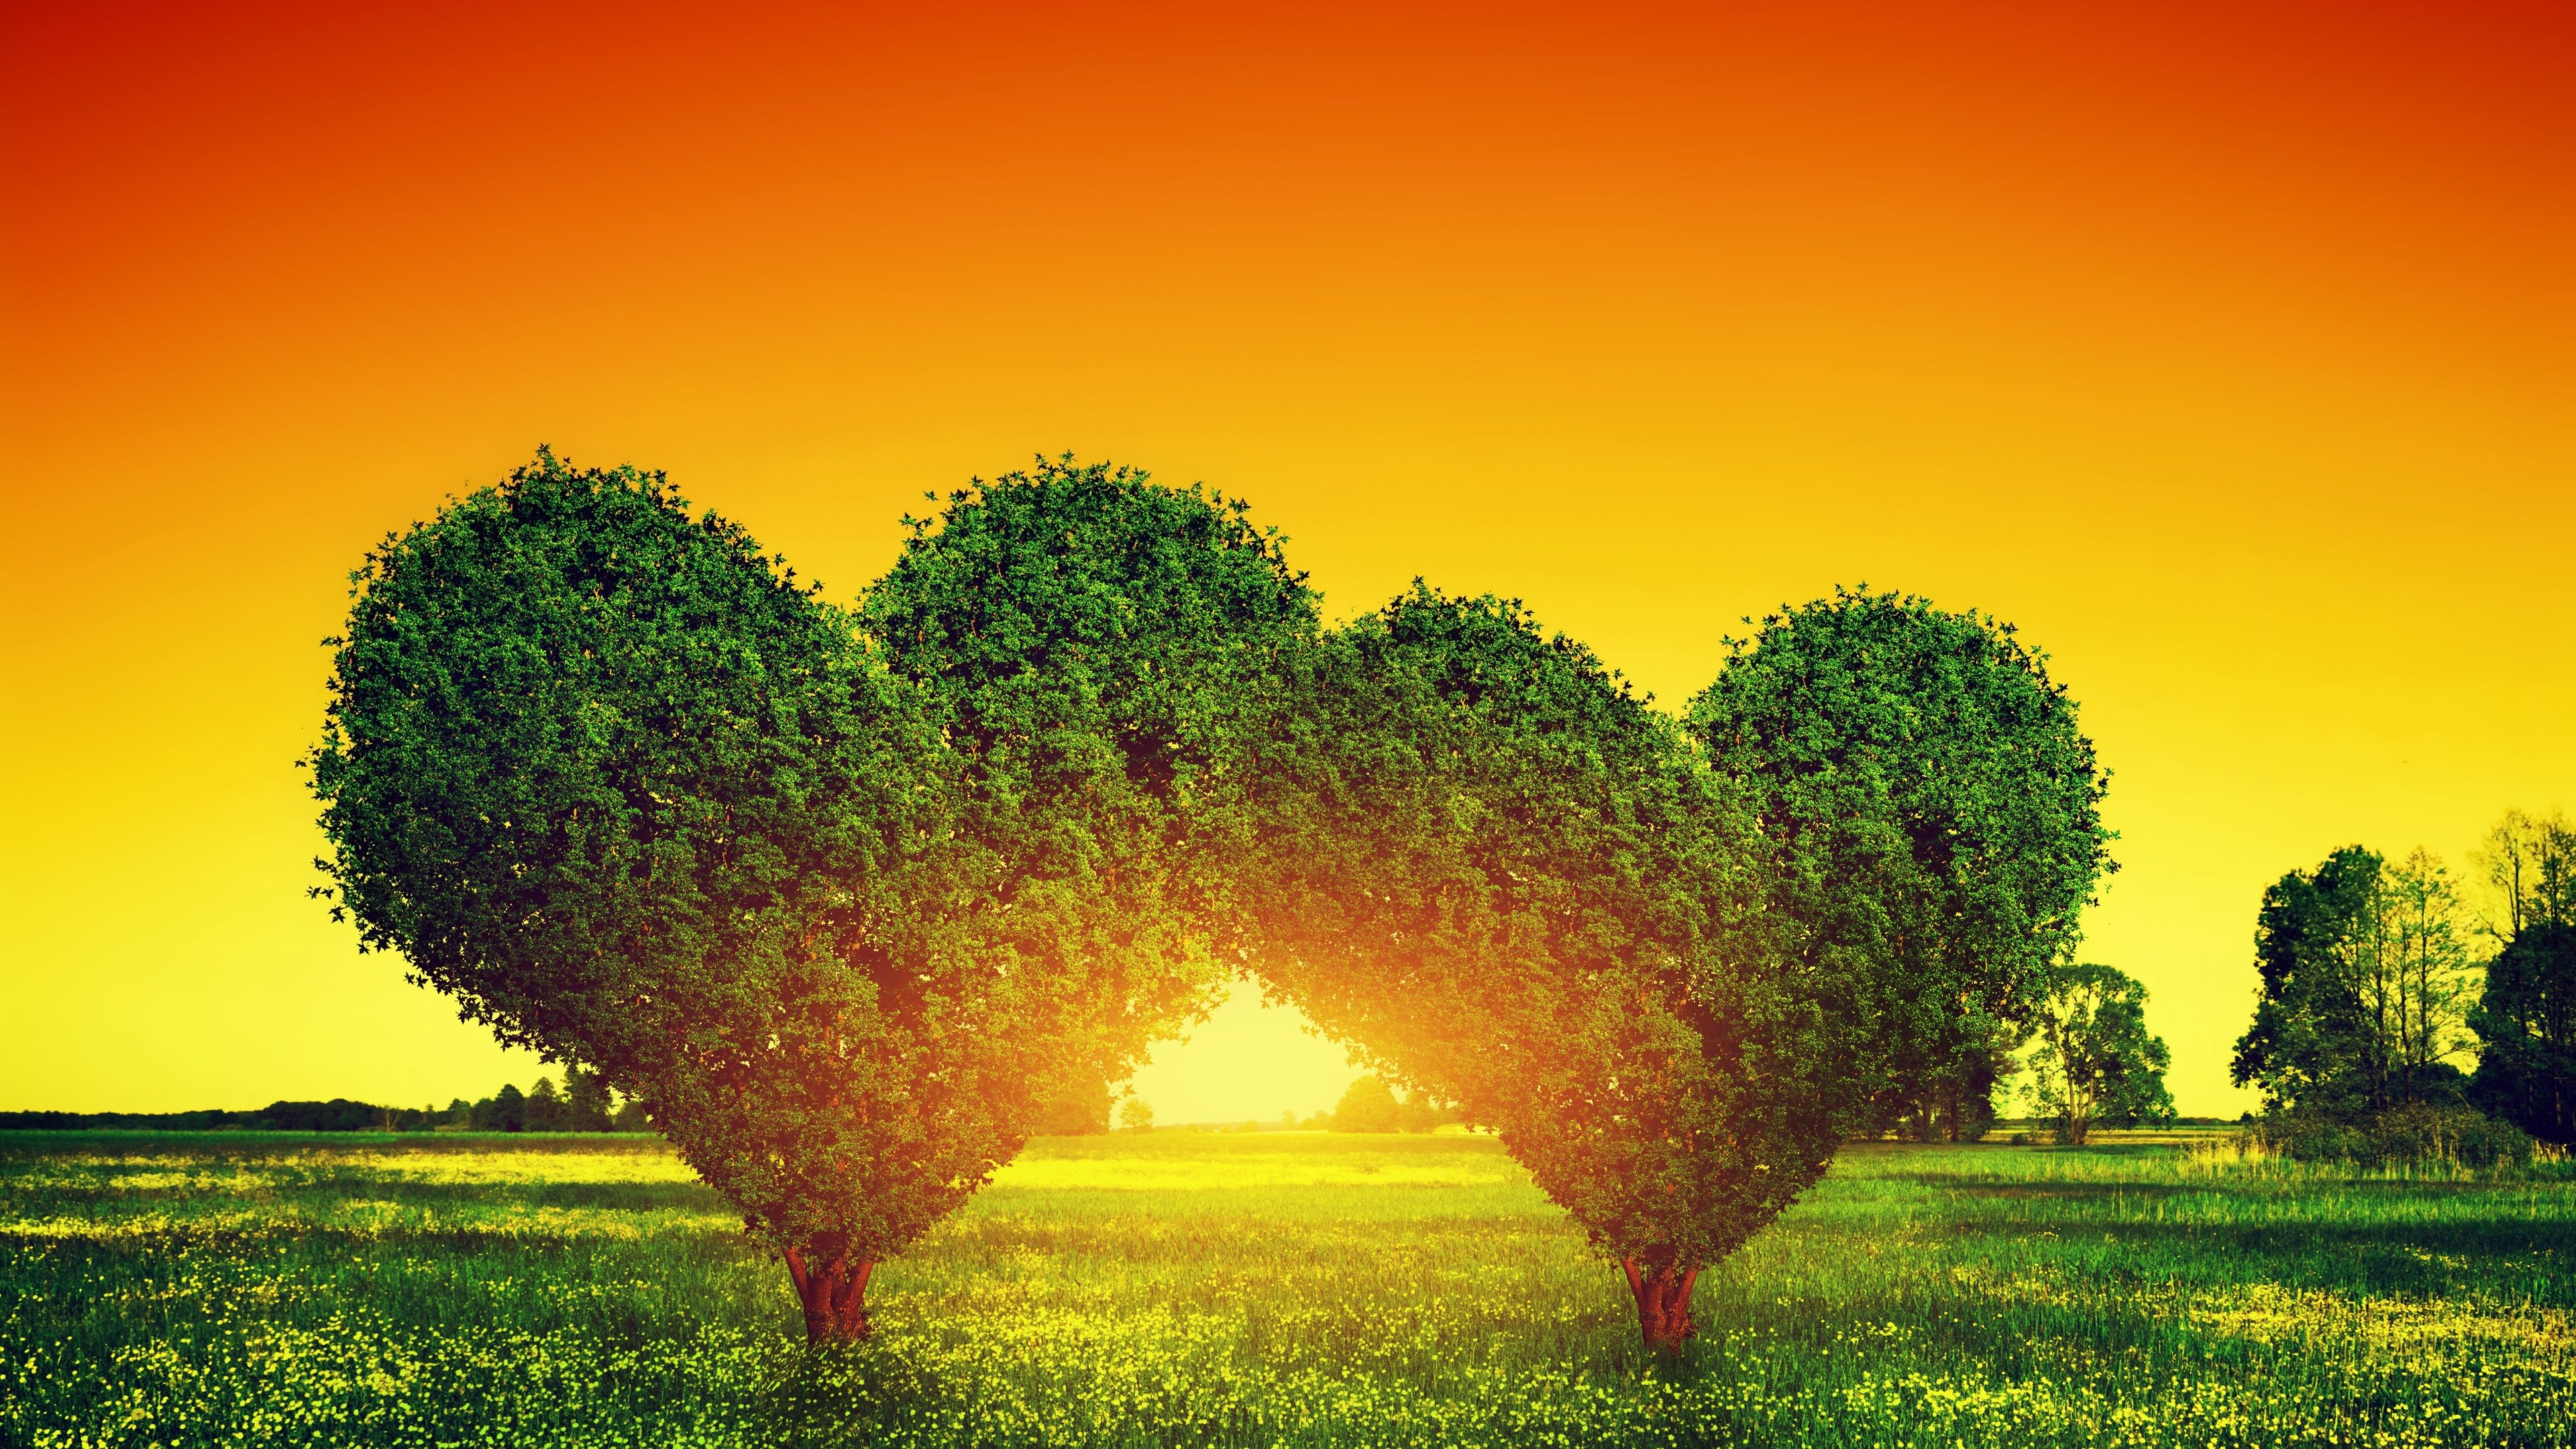 Two love hearts trees, grass, sunset wallpaper 3840x2160 UHD 4K